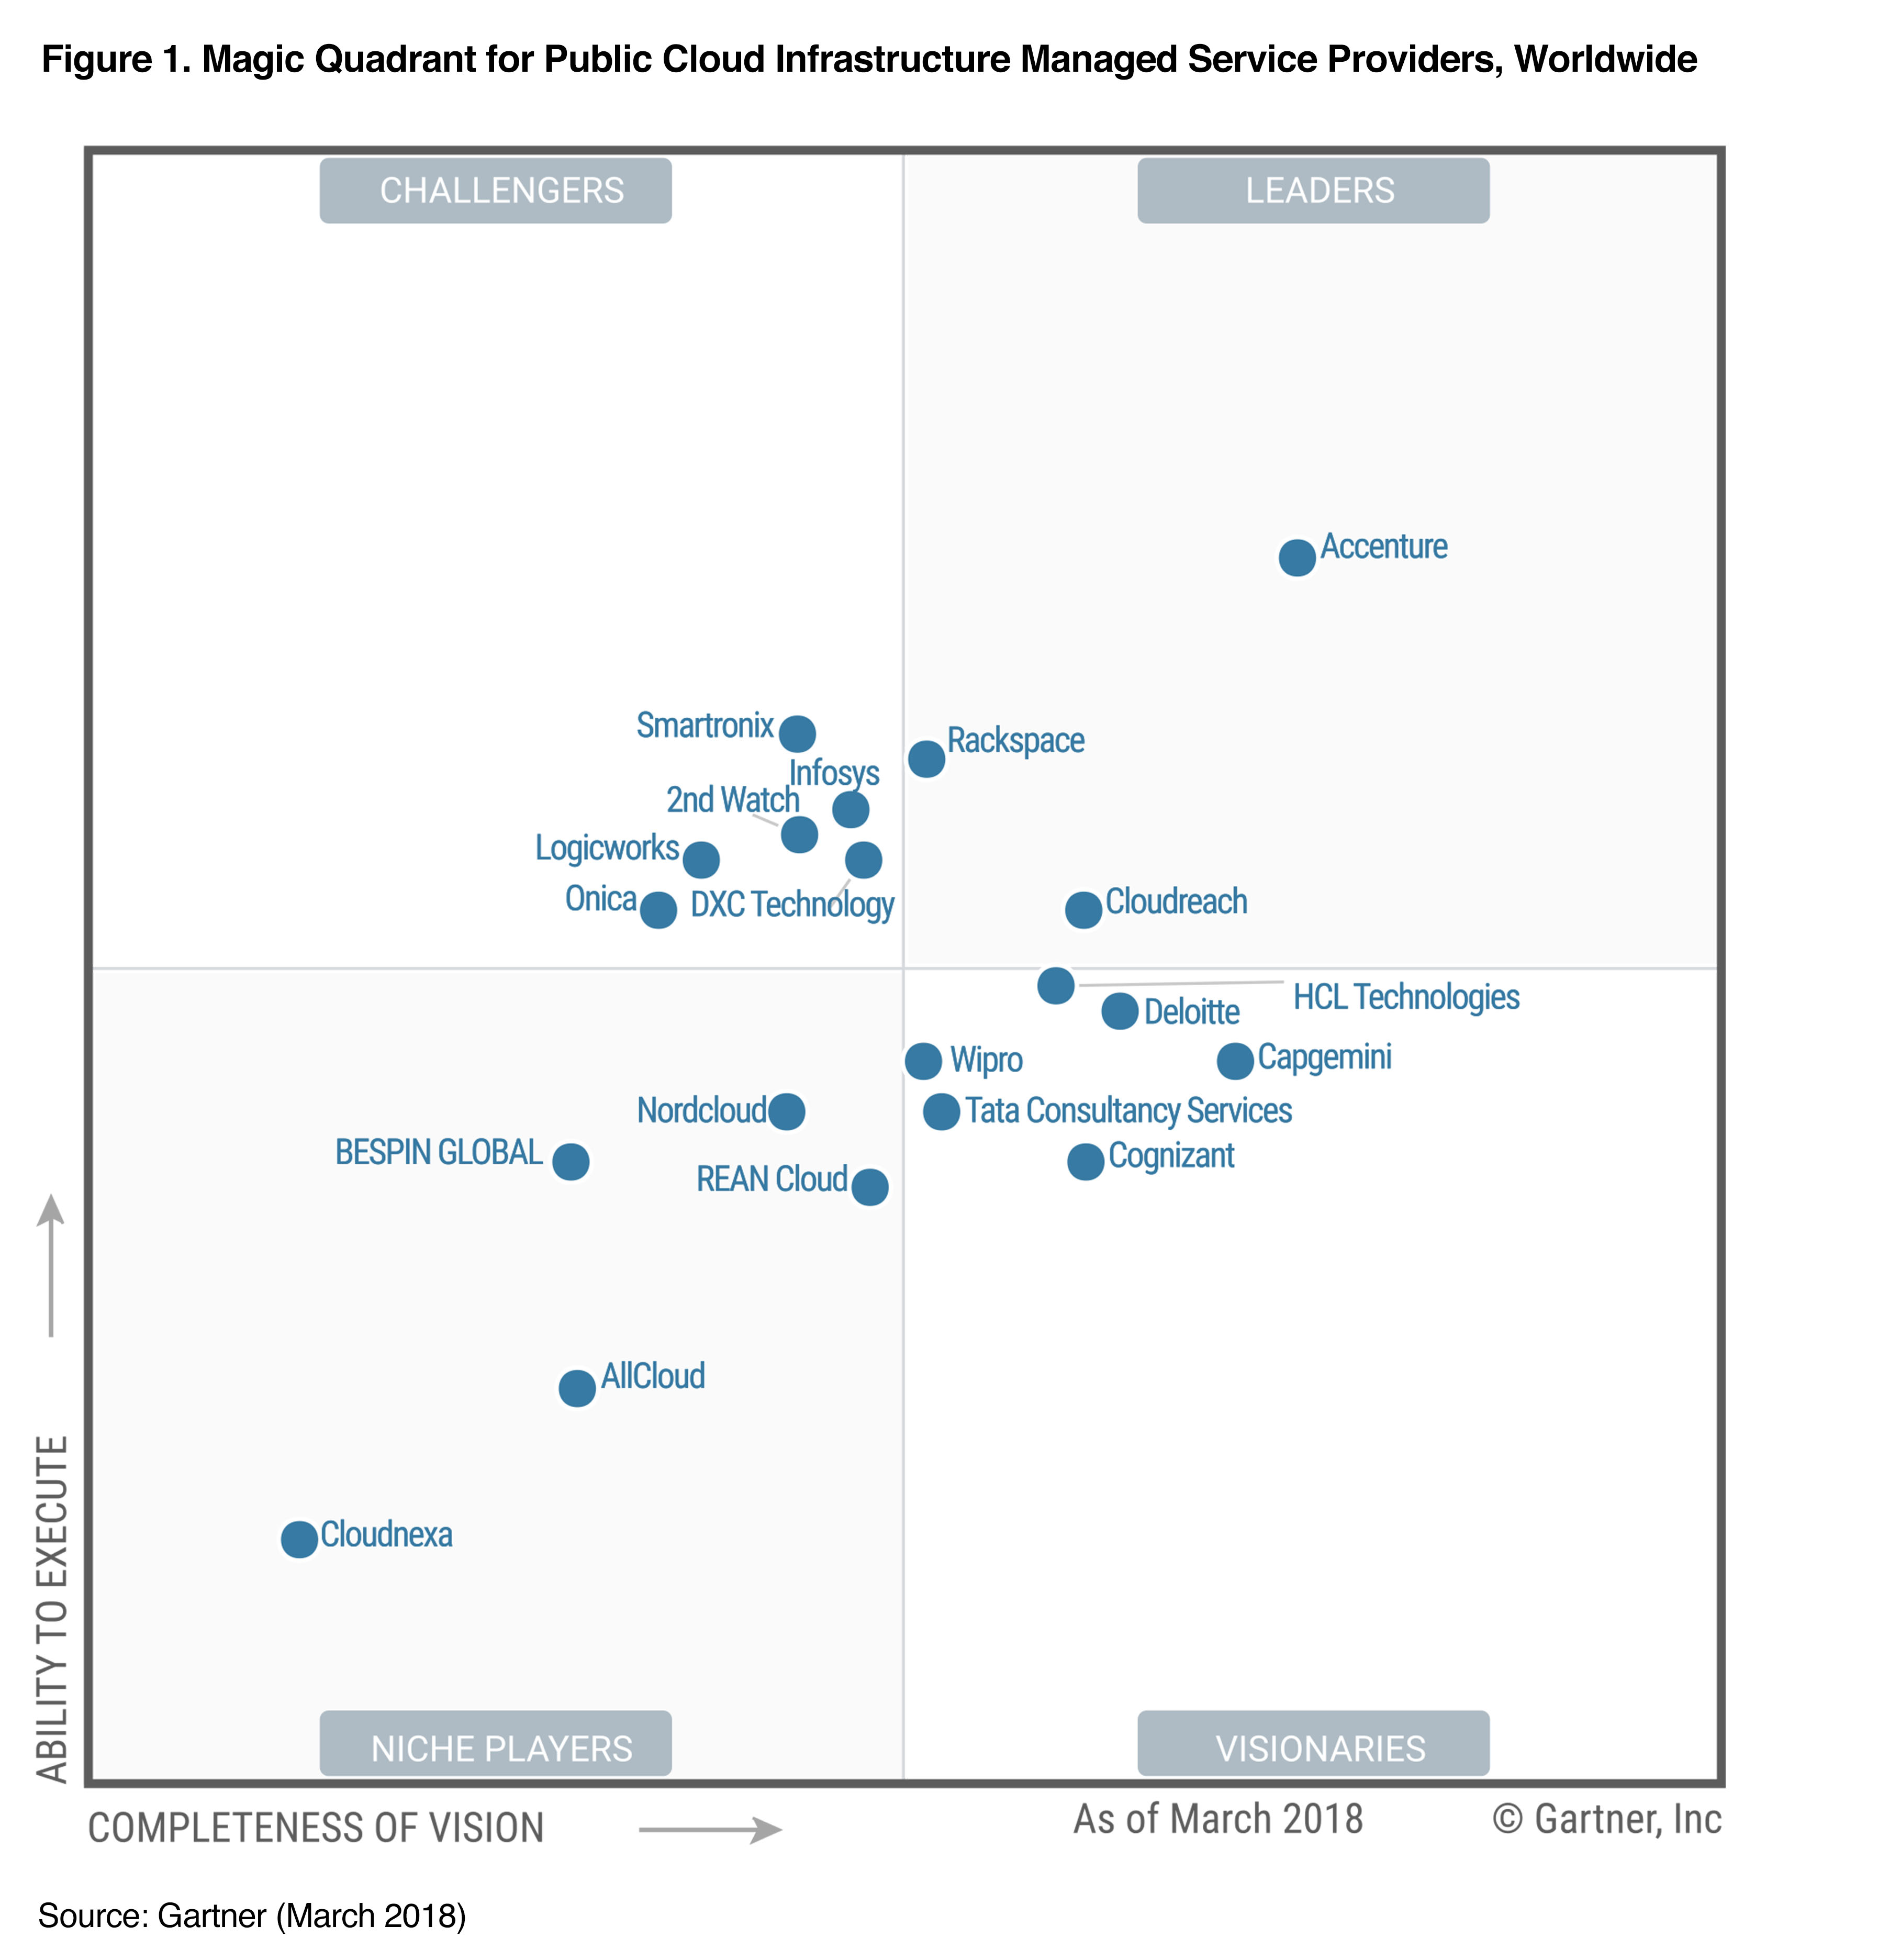 Figure 1. Magic Quadrant for Public Cloud Infrastructure Managed Service Providers, Worldwide